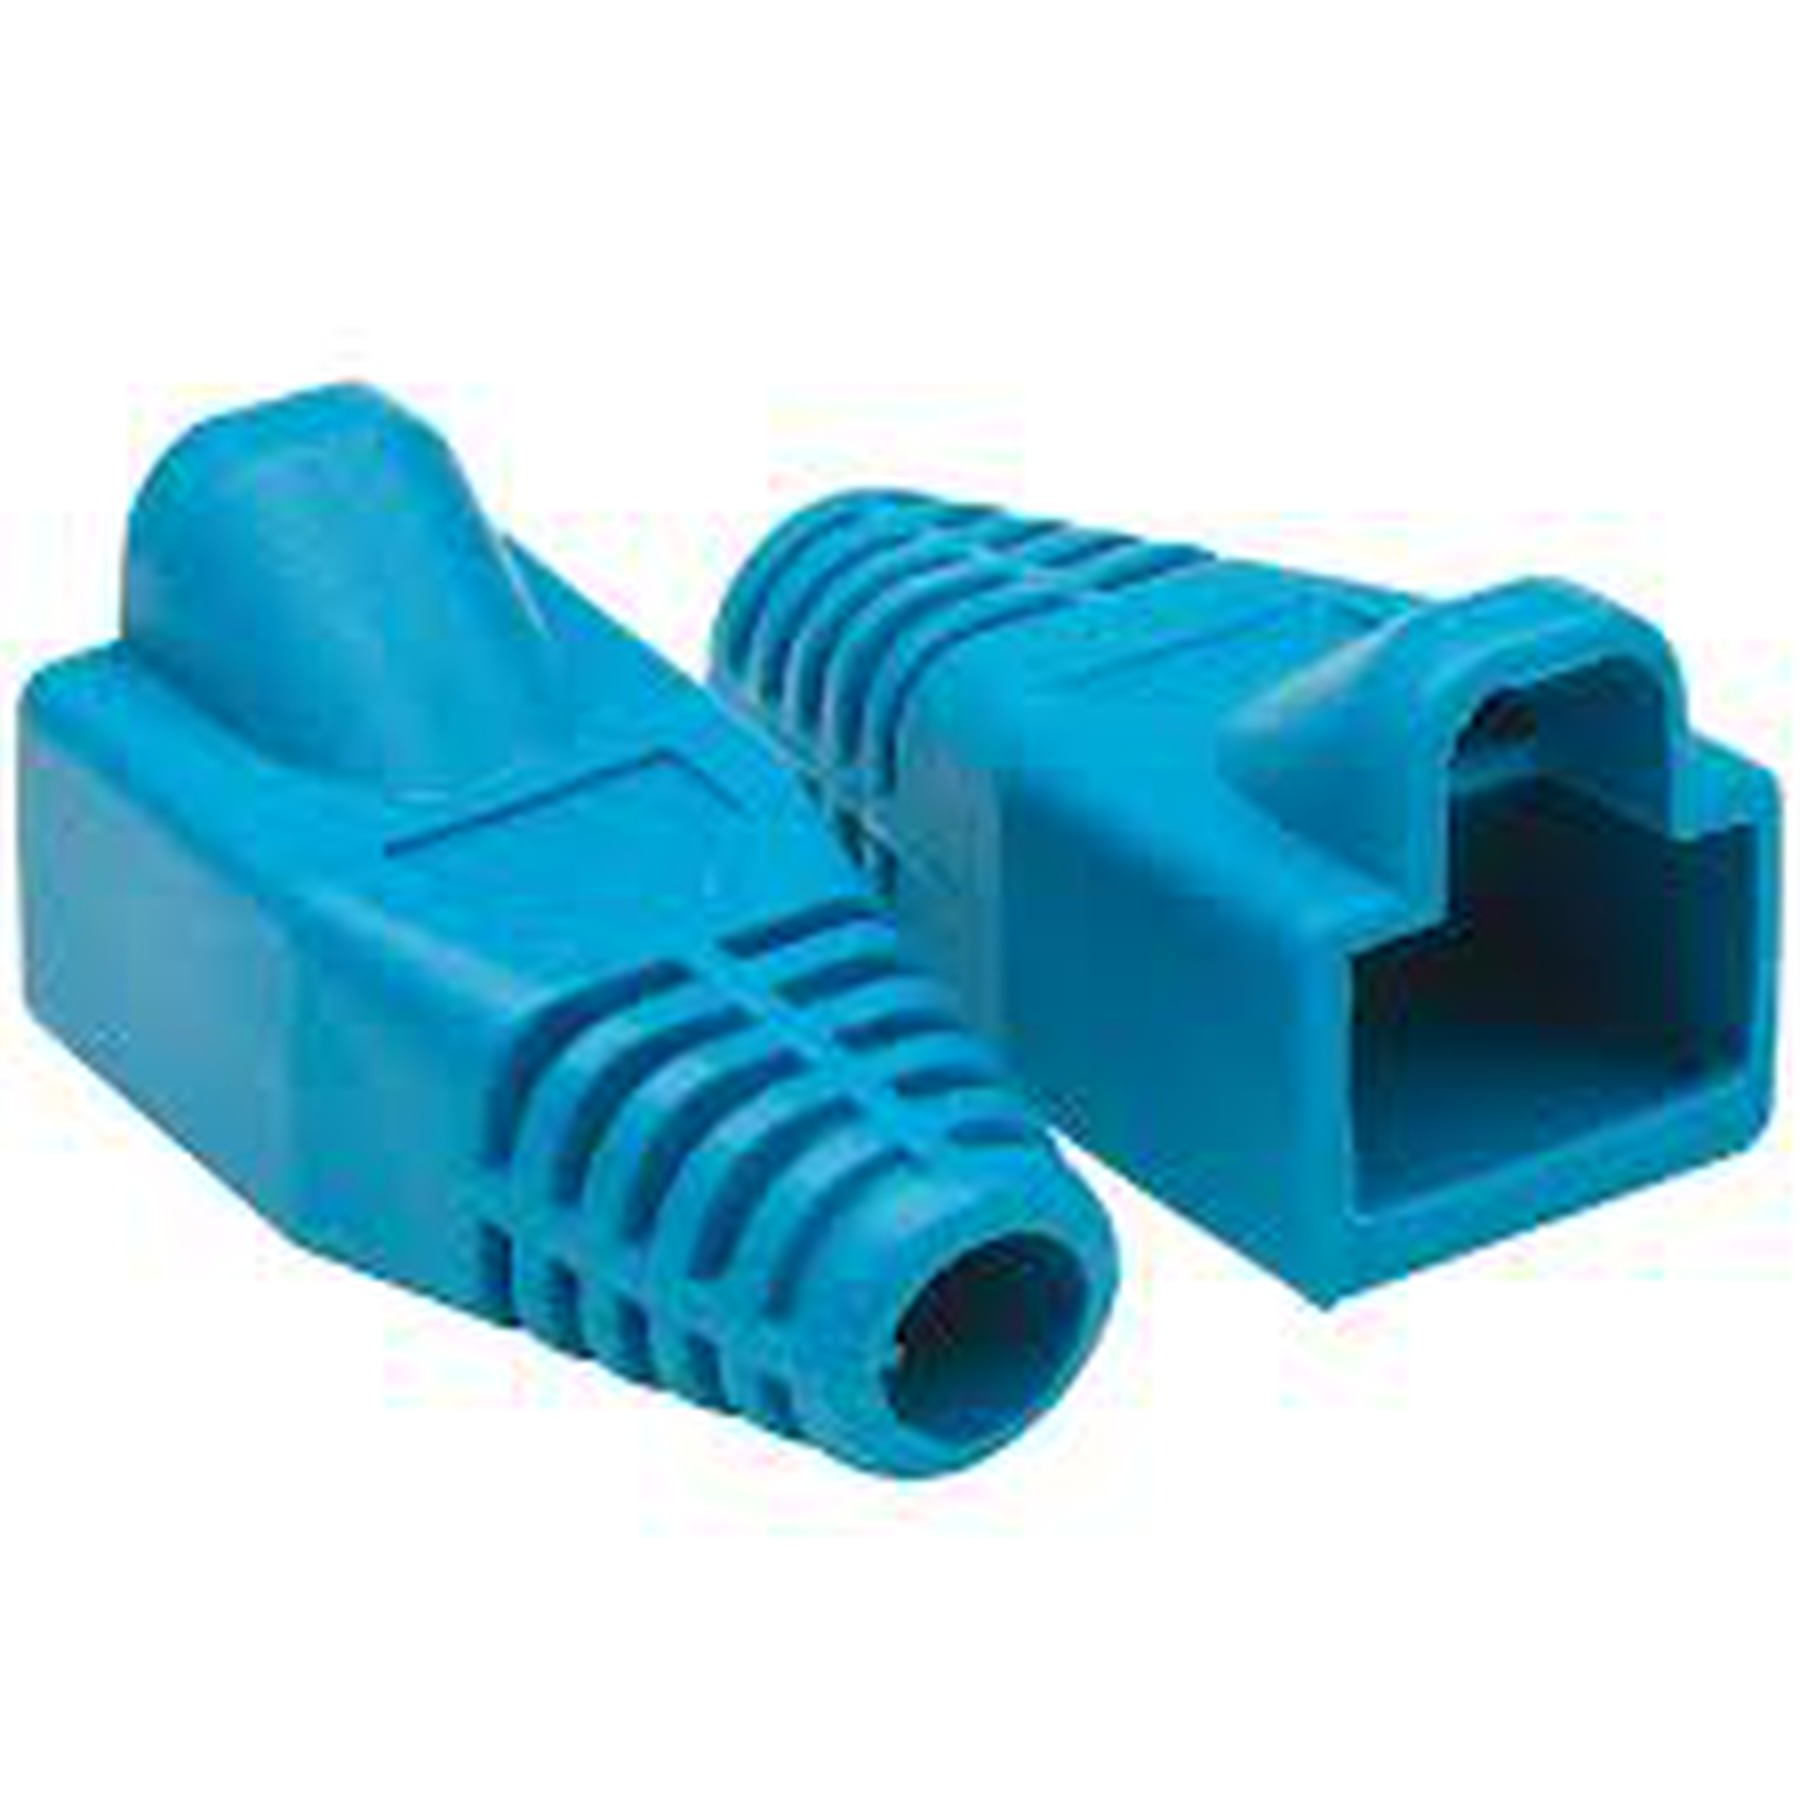 RJ45-BOOT-BL25 Product Zoom